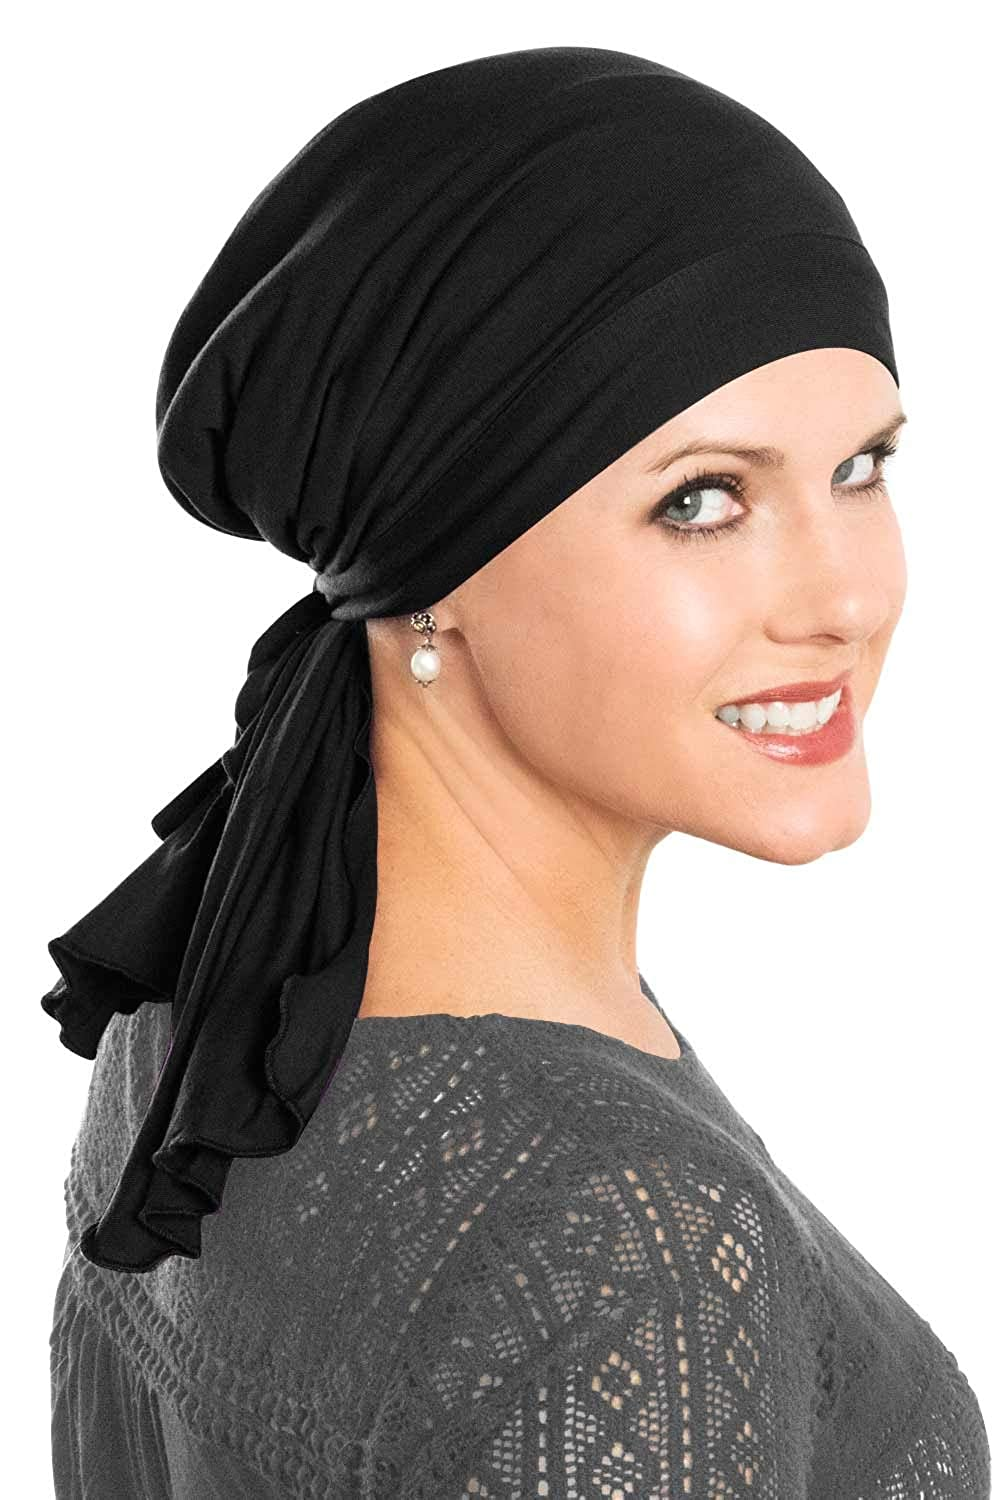 Cardani So Simple Scarf - Pre Tied Head Scarf for Women in Soft Bamboo -  Cancer   Chemo Patients Luxury Bamboo - Black at Amazon Women s Clothing  store  faac4efde69